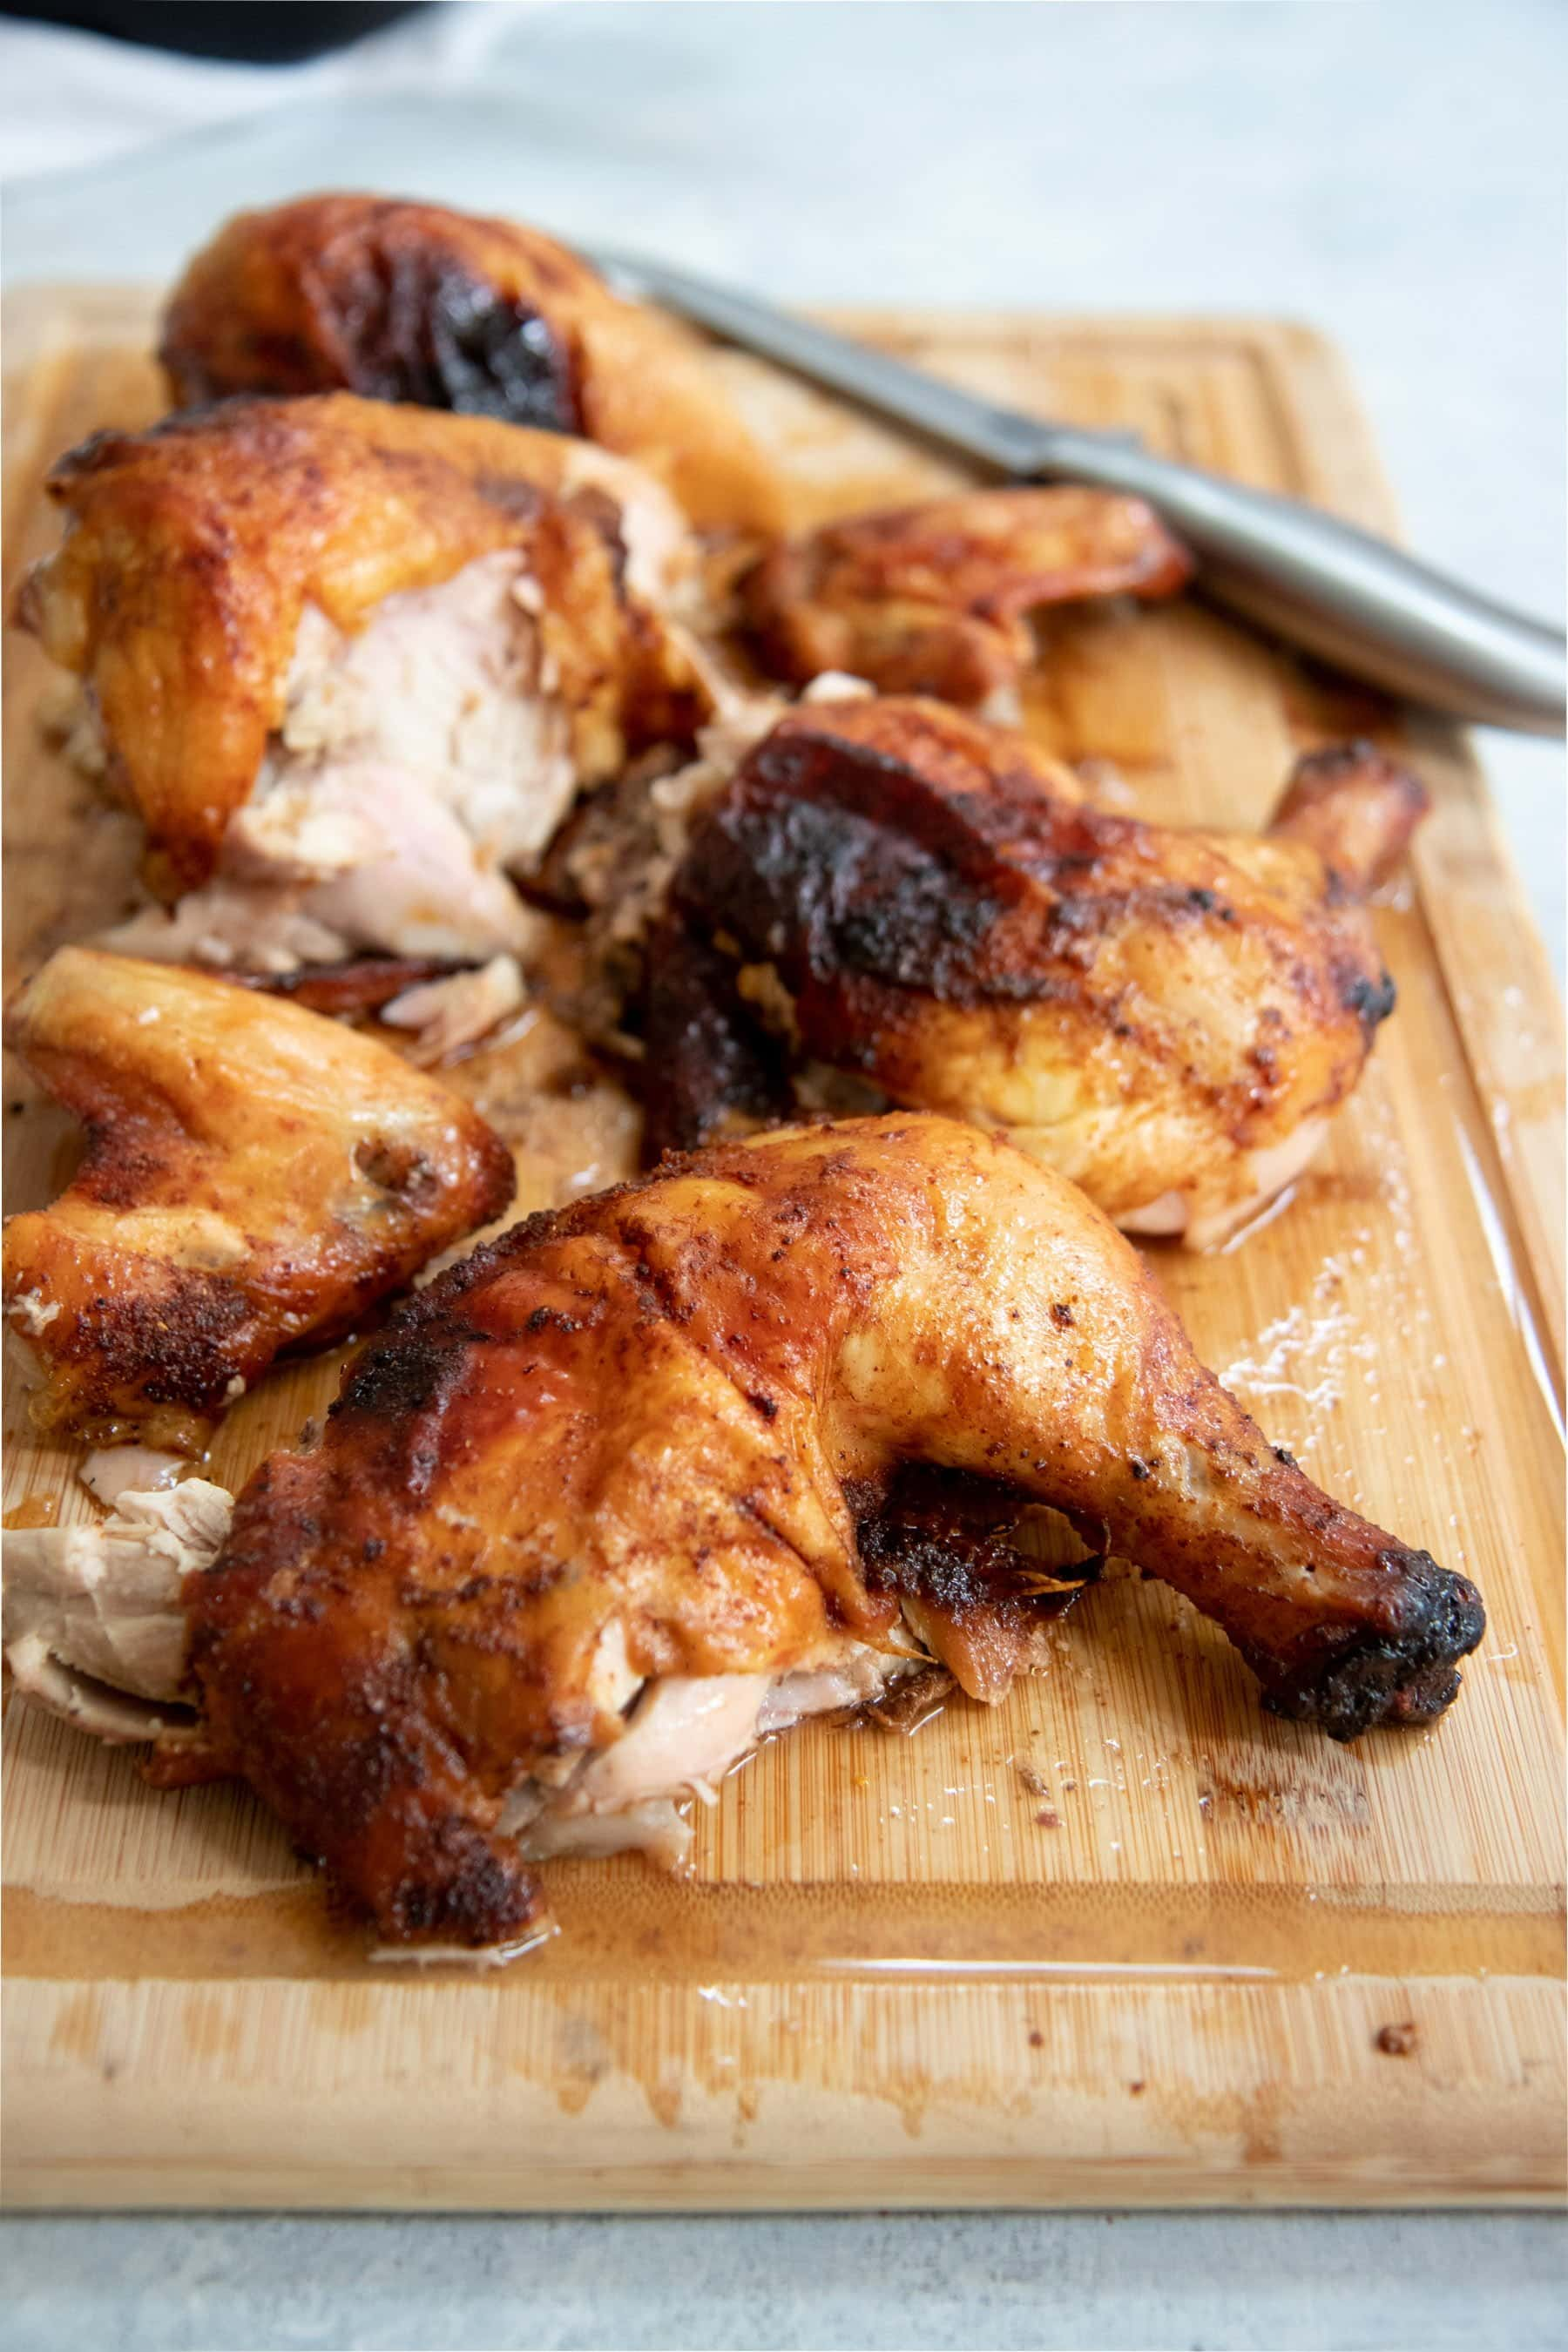 Side angle shot of cut-up grilled chicken on a wooden cutting board